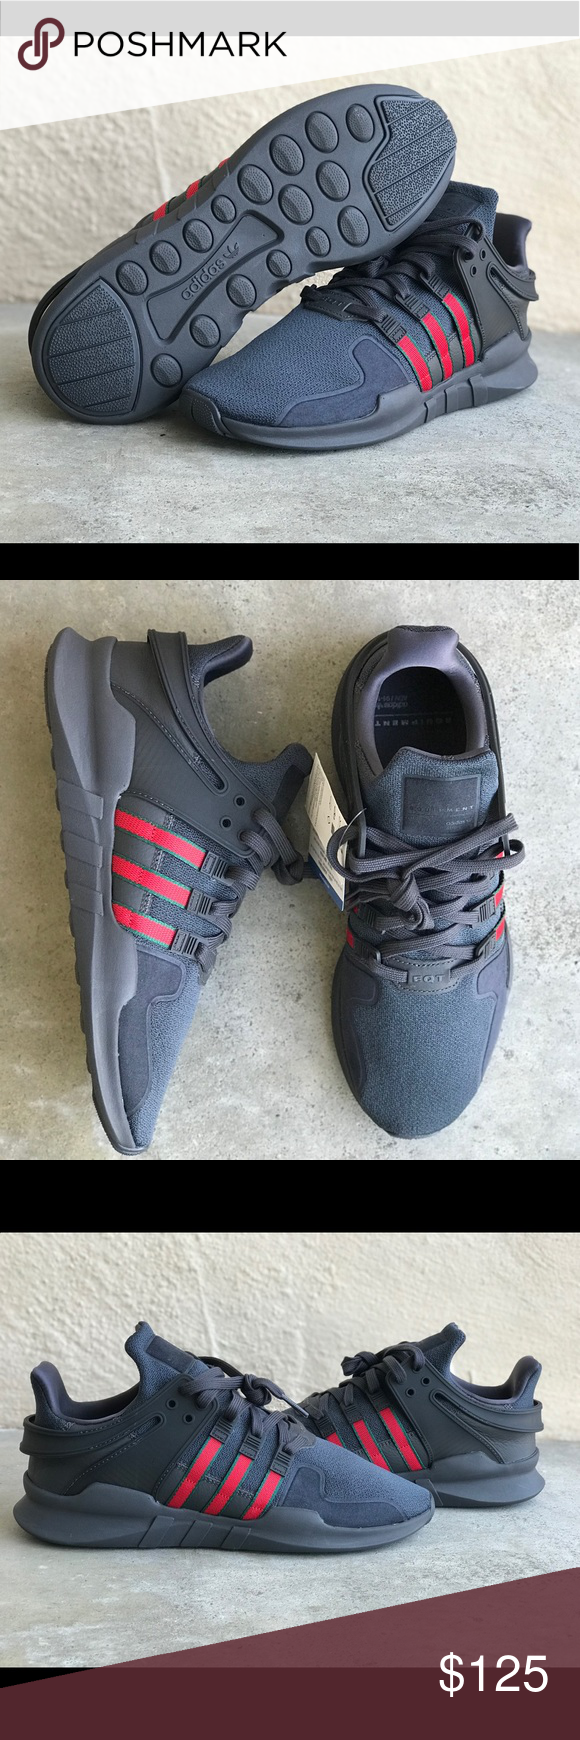 huge selection of 0acee 3220f Adidas EQT Support ADV Gucci sneakers Brand new without box ...